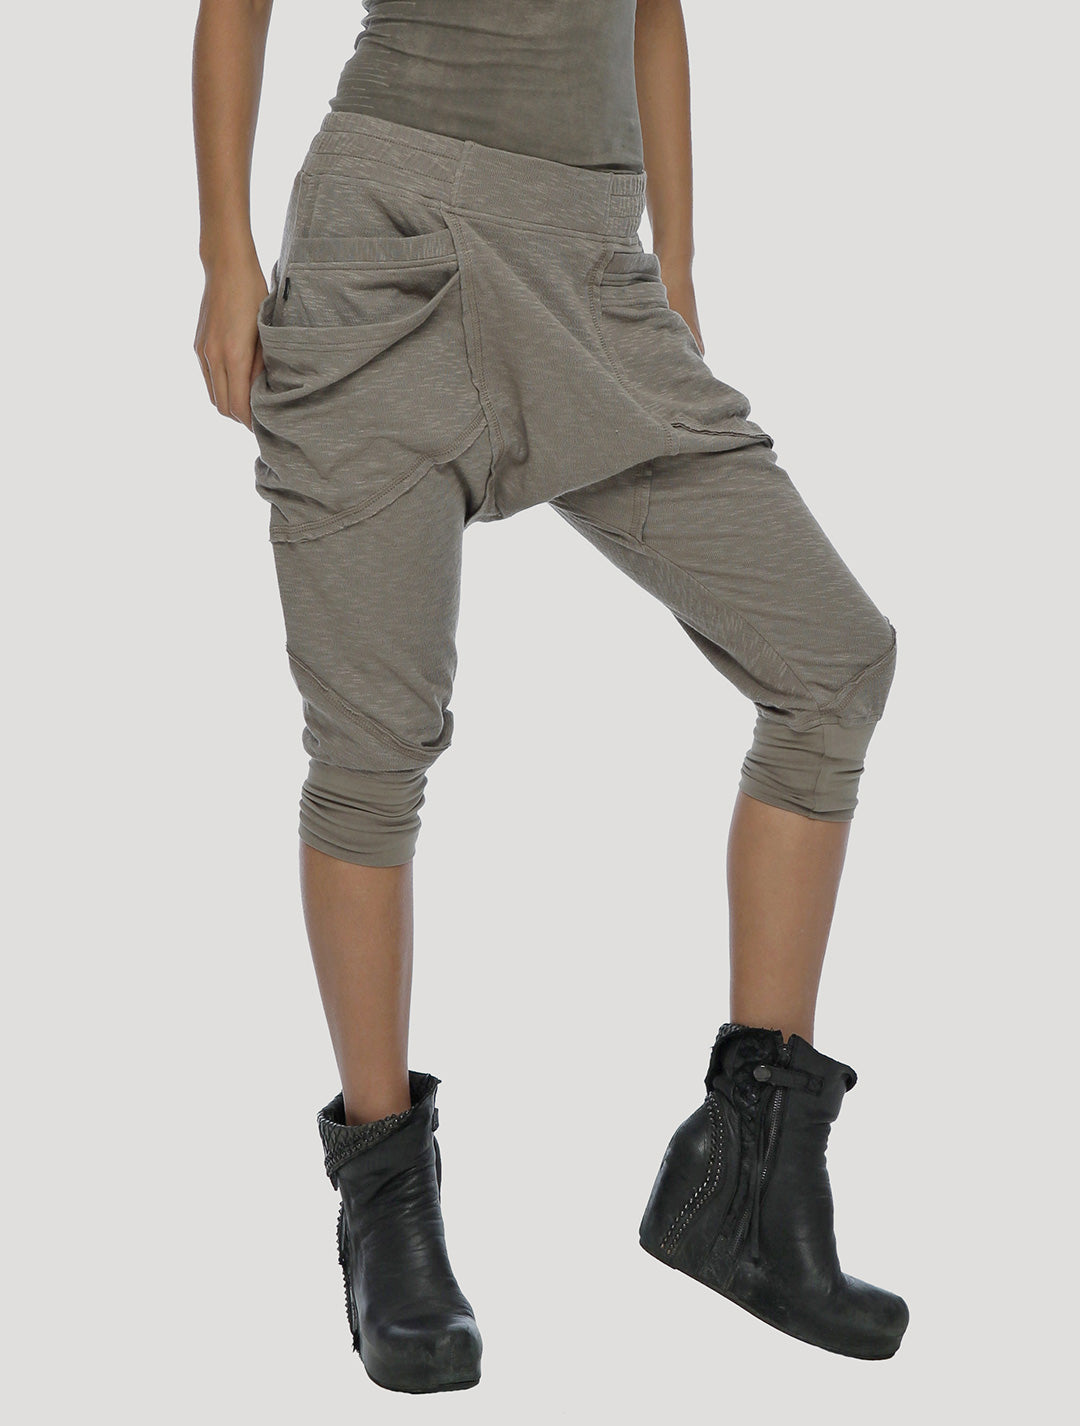 Psylo Fashion ethical alternative streetwear Twisted 3/4 Pants